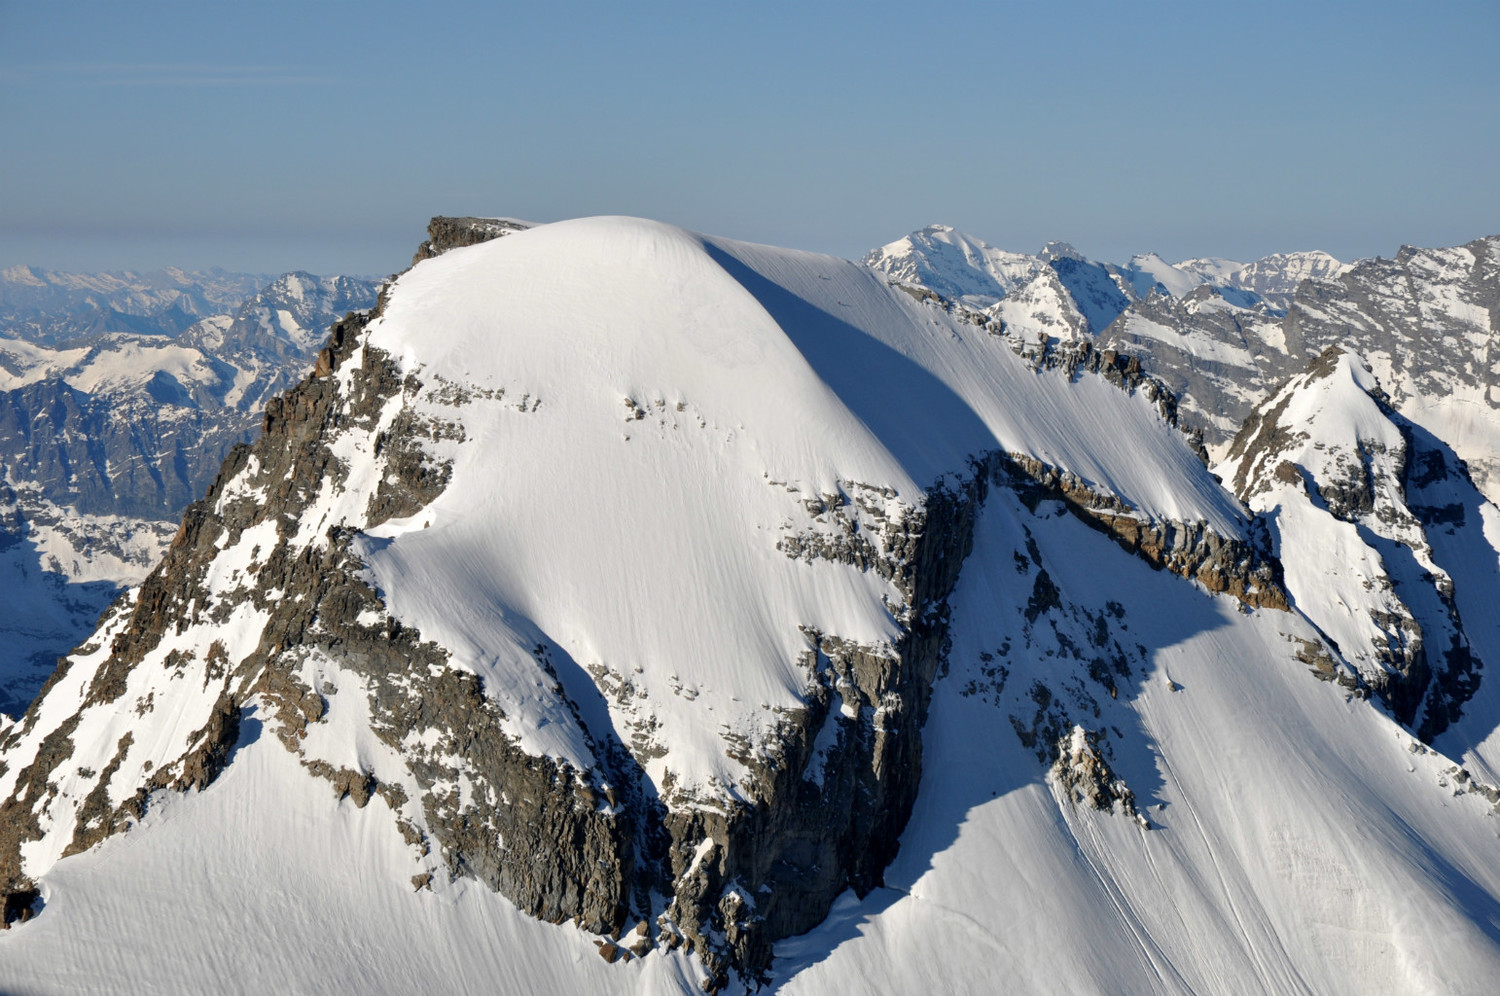 Ciarforon (3641m) : north face. Climbers on the final snow slope